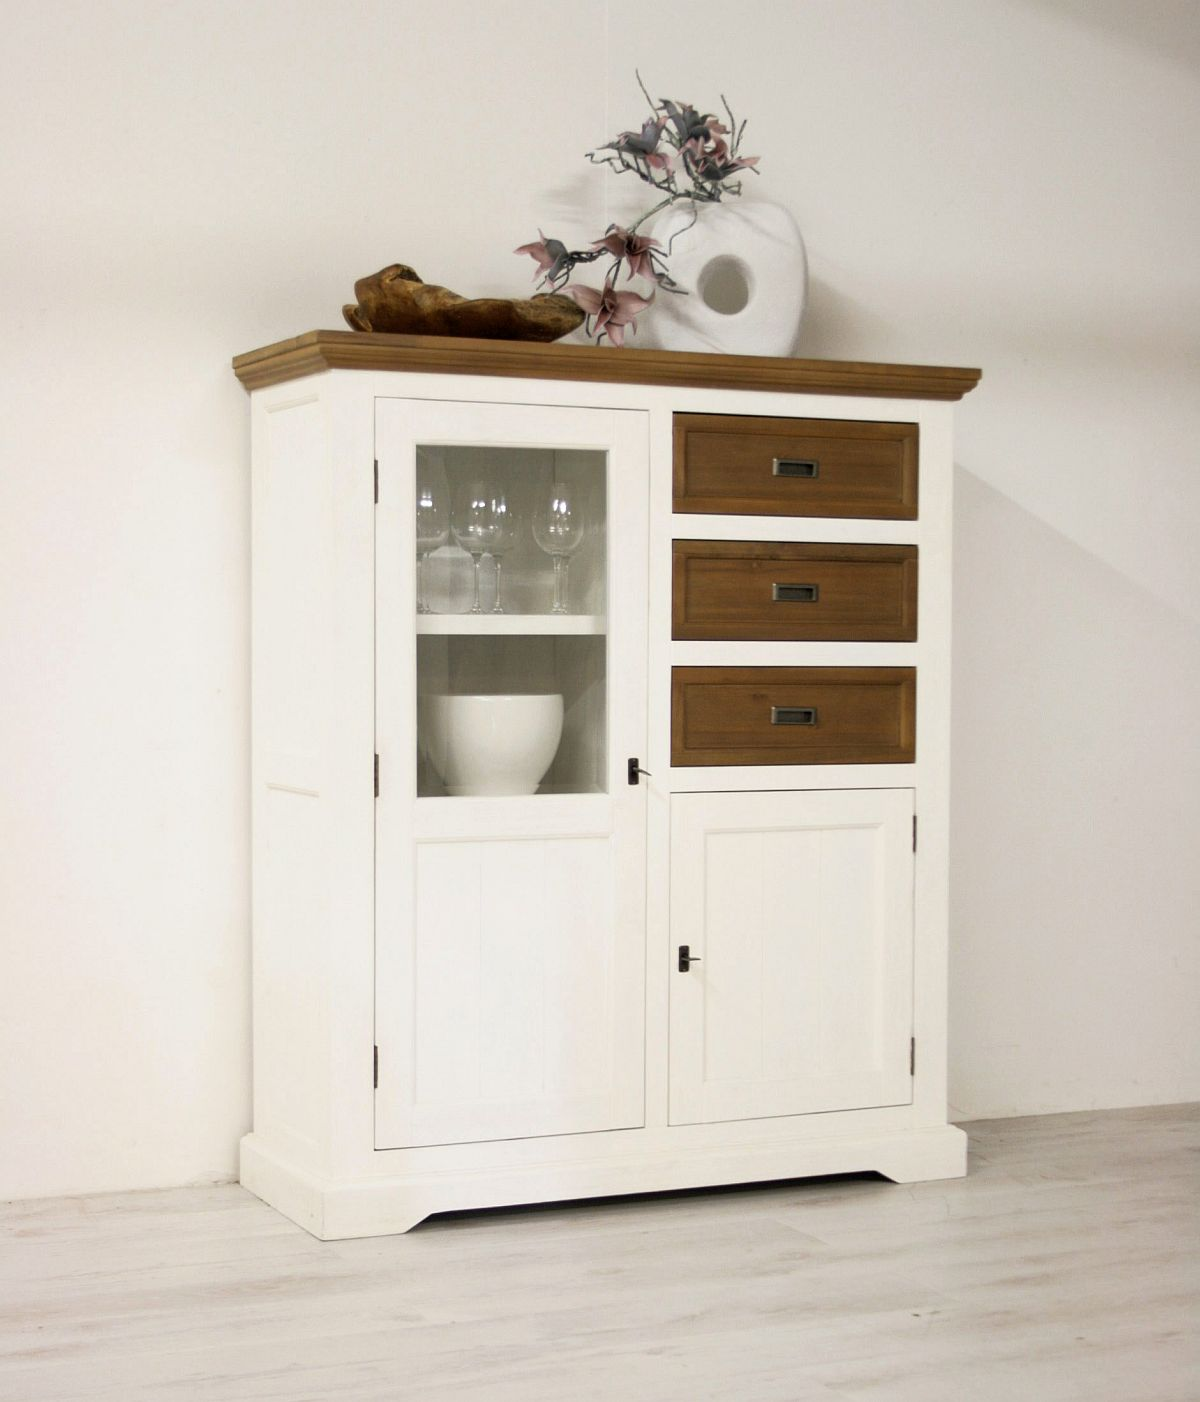 highboard vertiko anrichte akazie massiv landhausstil wei cappuccino fleur ebay. Black Bedroom Furniture Sets. Home Design Ideas